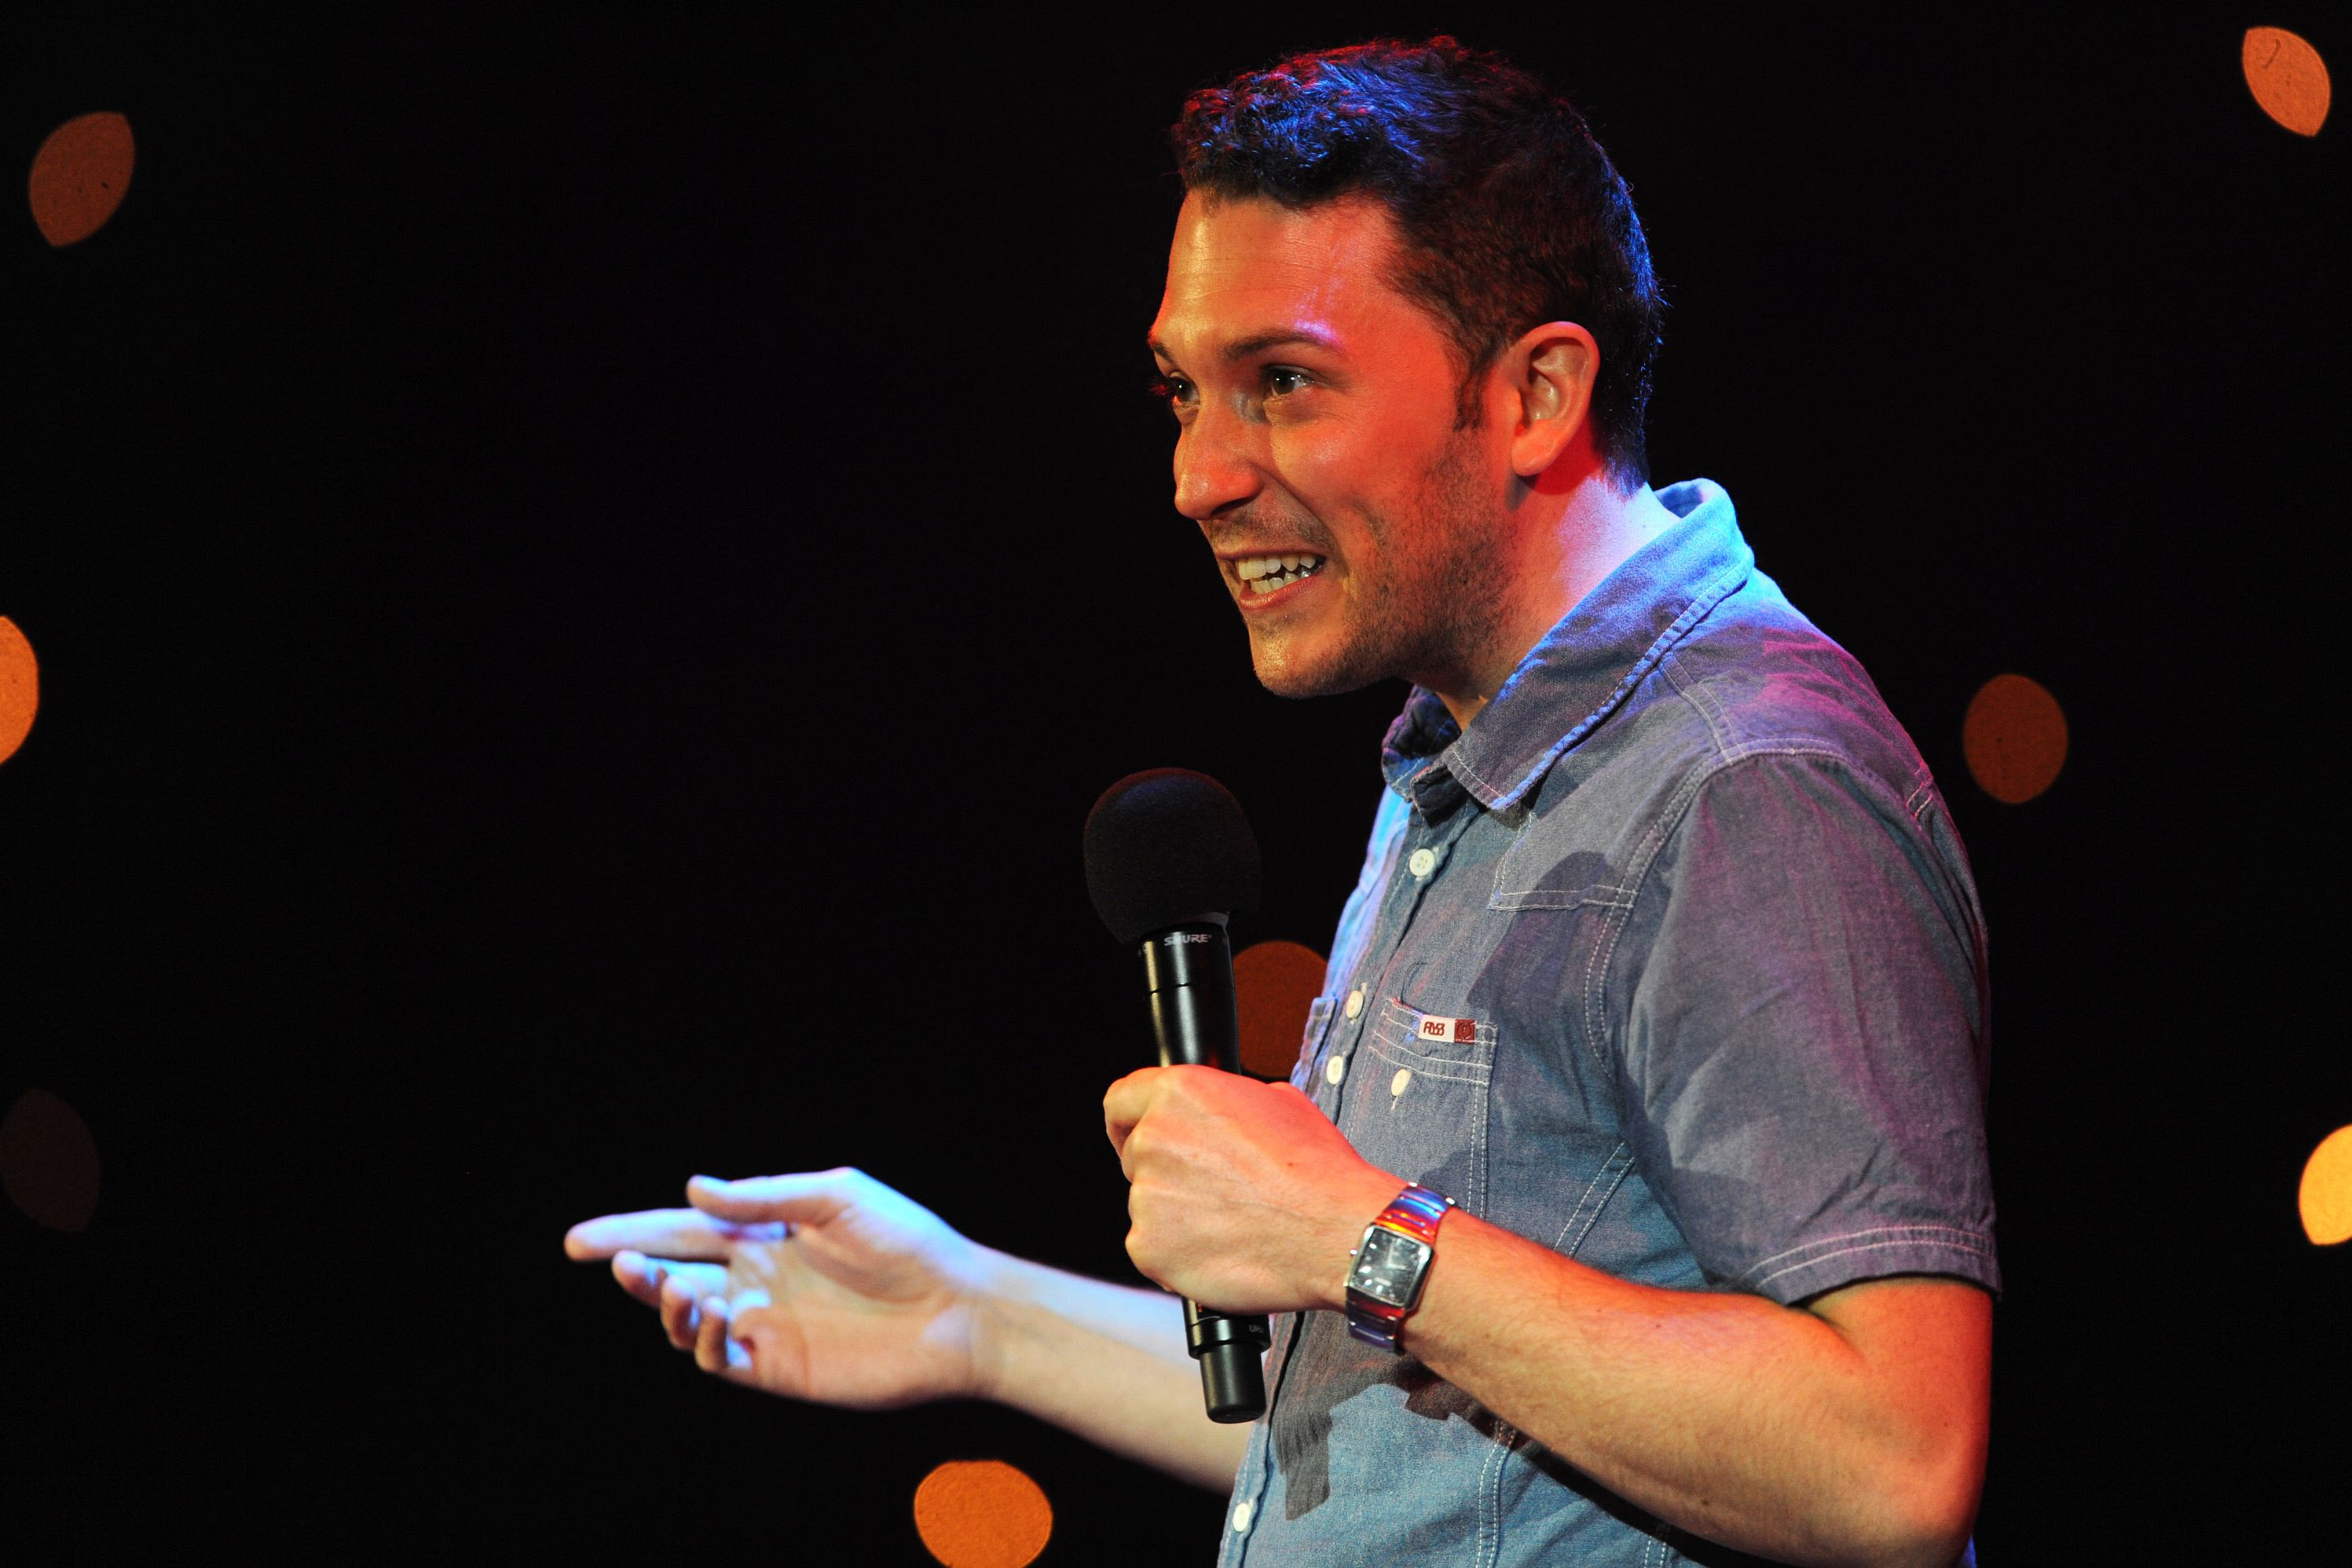 Jon Richardson, 8 Out of 10 Cats Does Countdown